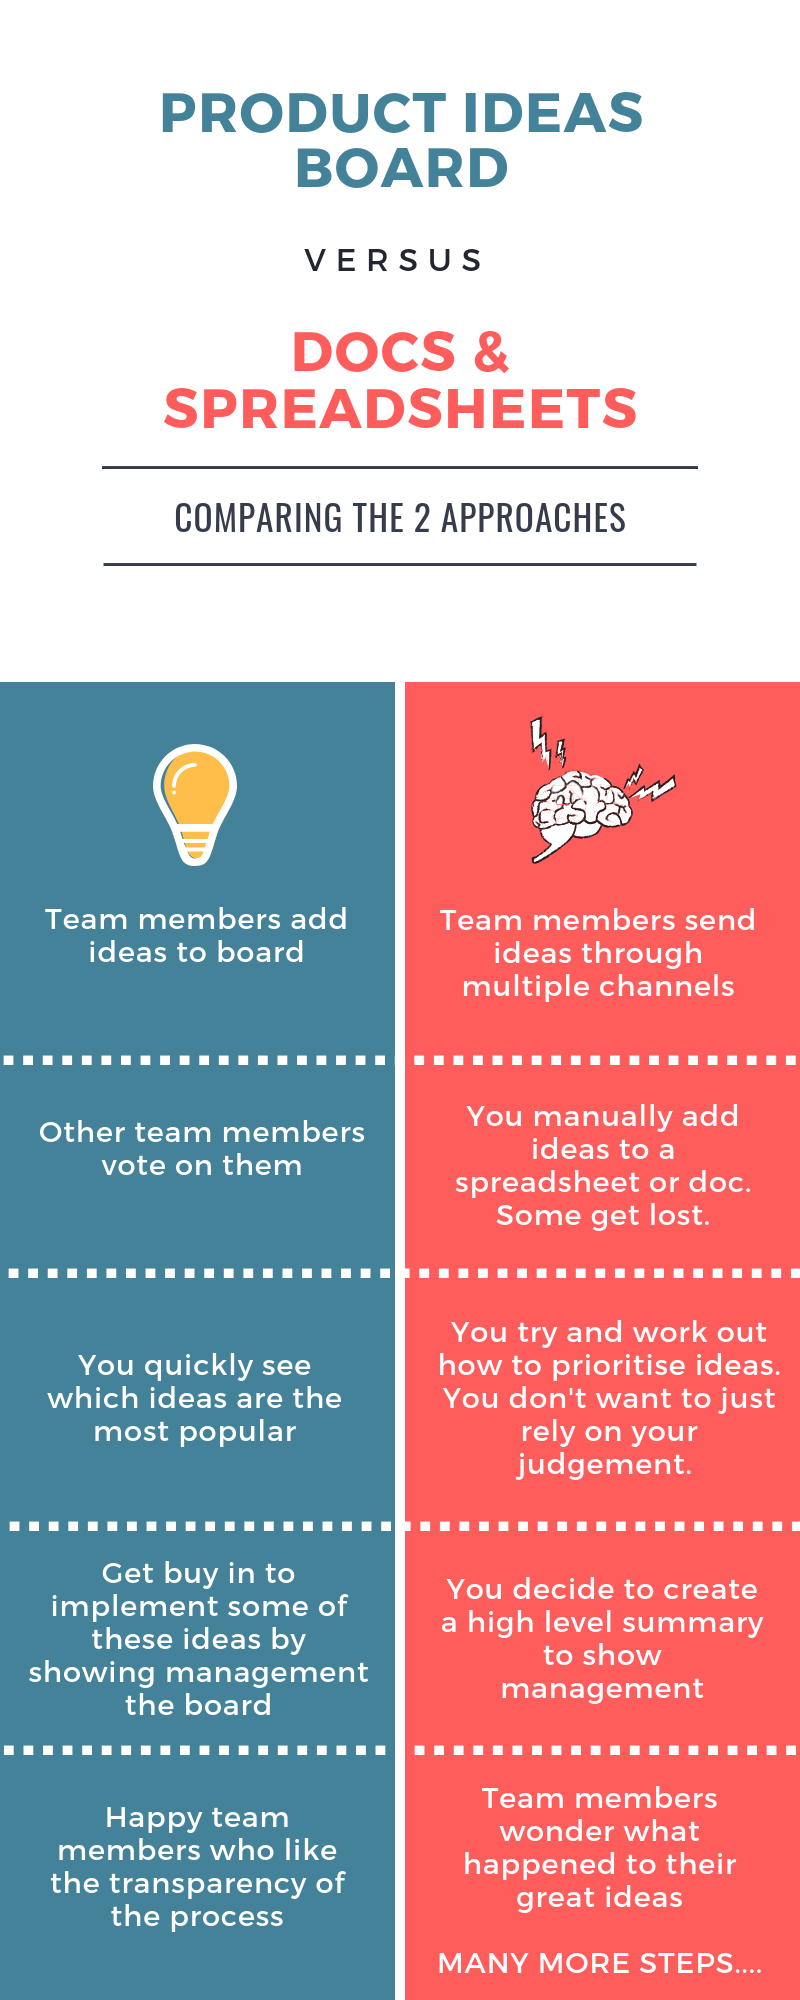 Infographic comparing a product ideas board to a DIY approach to collecting and prioritising feedback